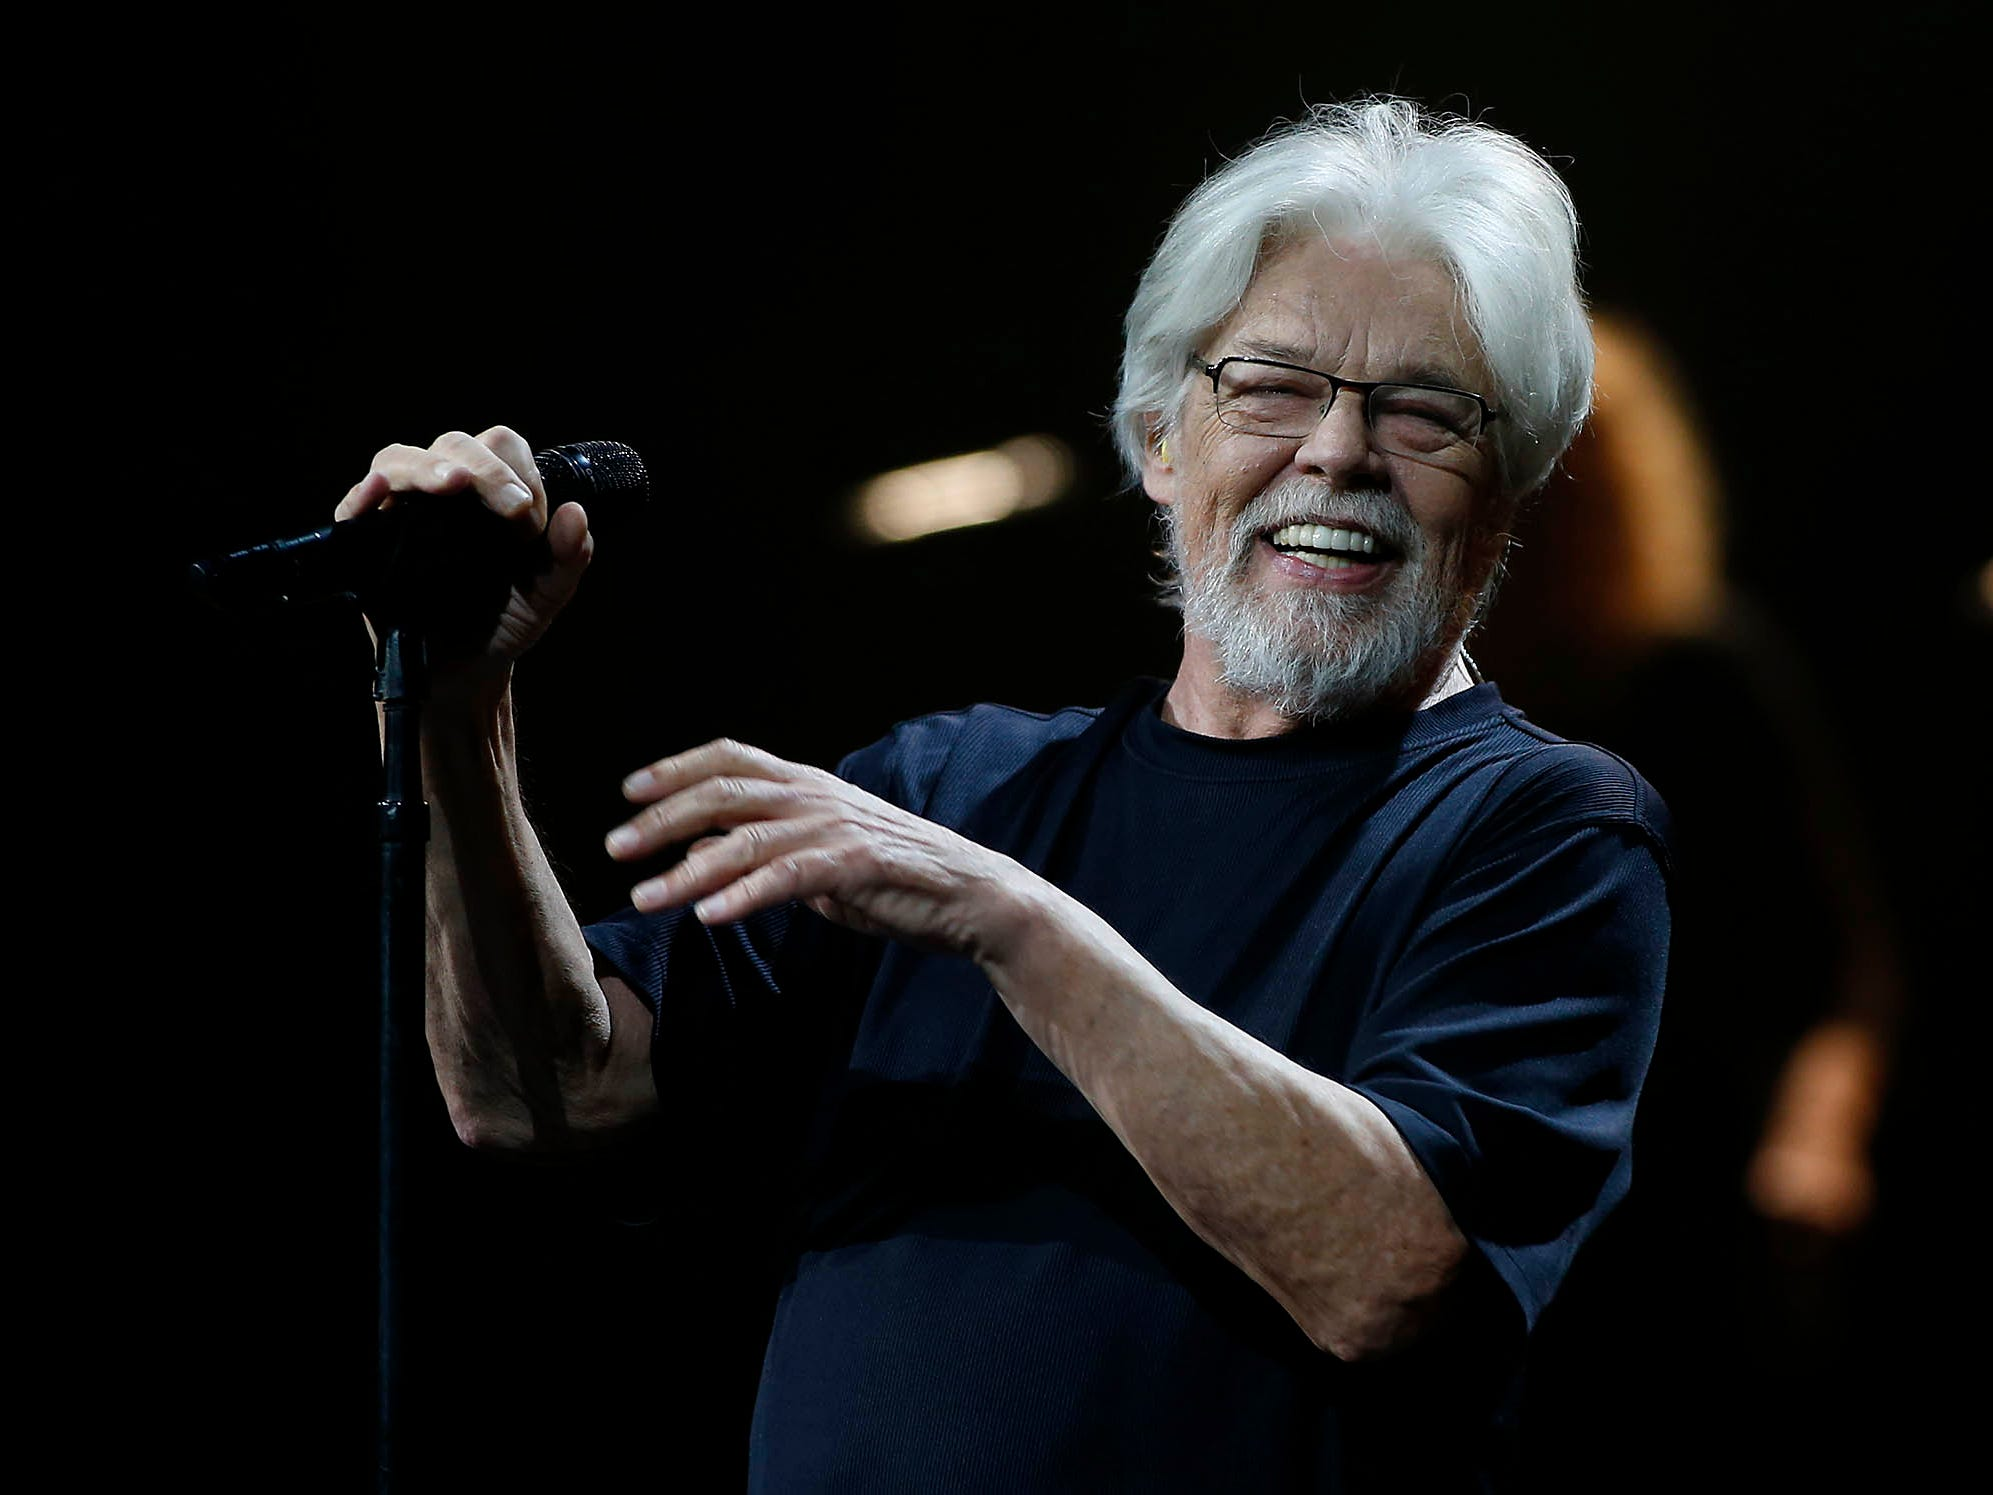 Bob Seger brought his final tour to Phoenix for a sold-out show